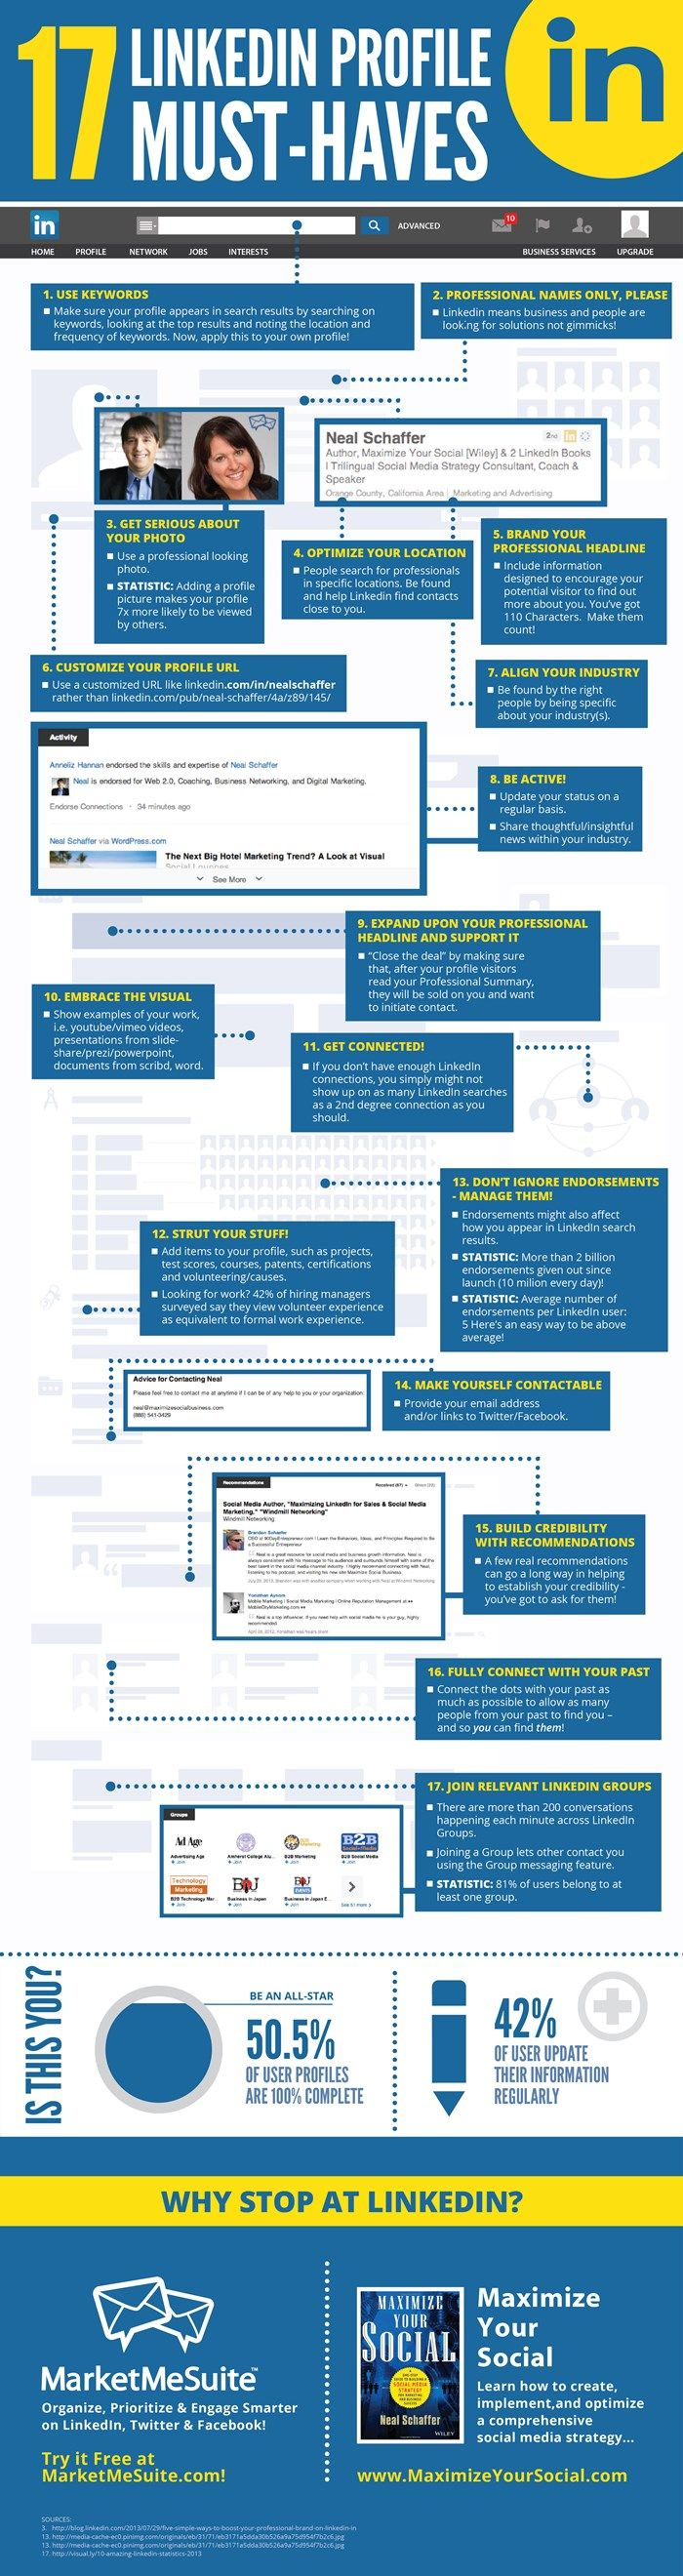 17 LinkedIn Profile Must-Haves-Use LinkedIn as a well to explore career options as well as visualize a career for your career